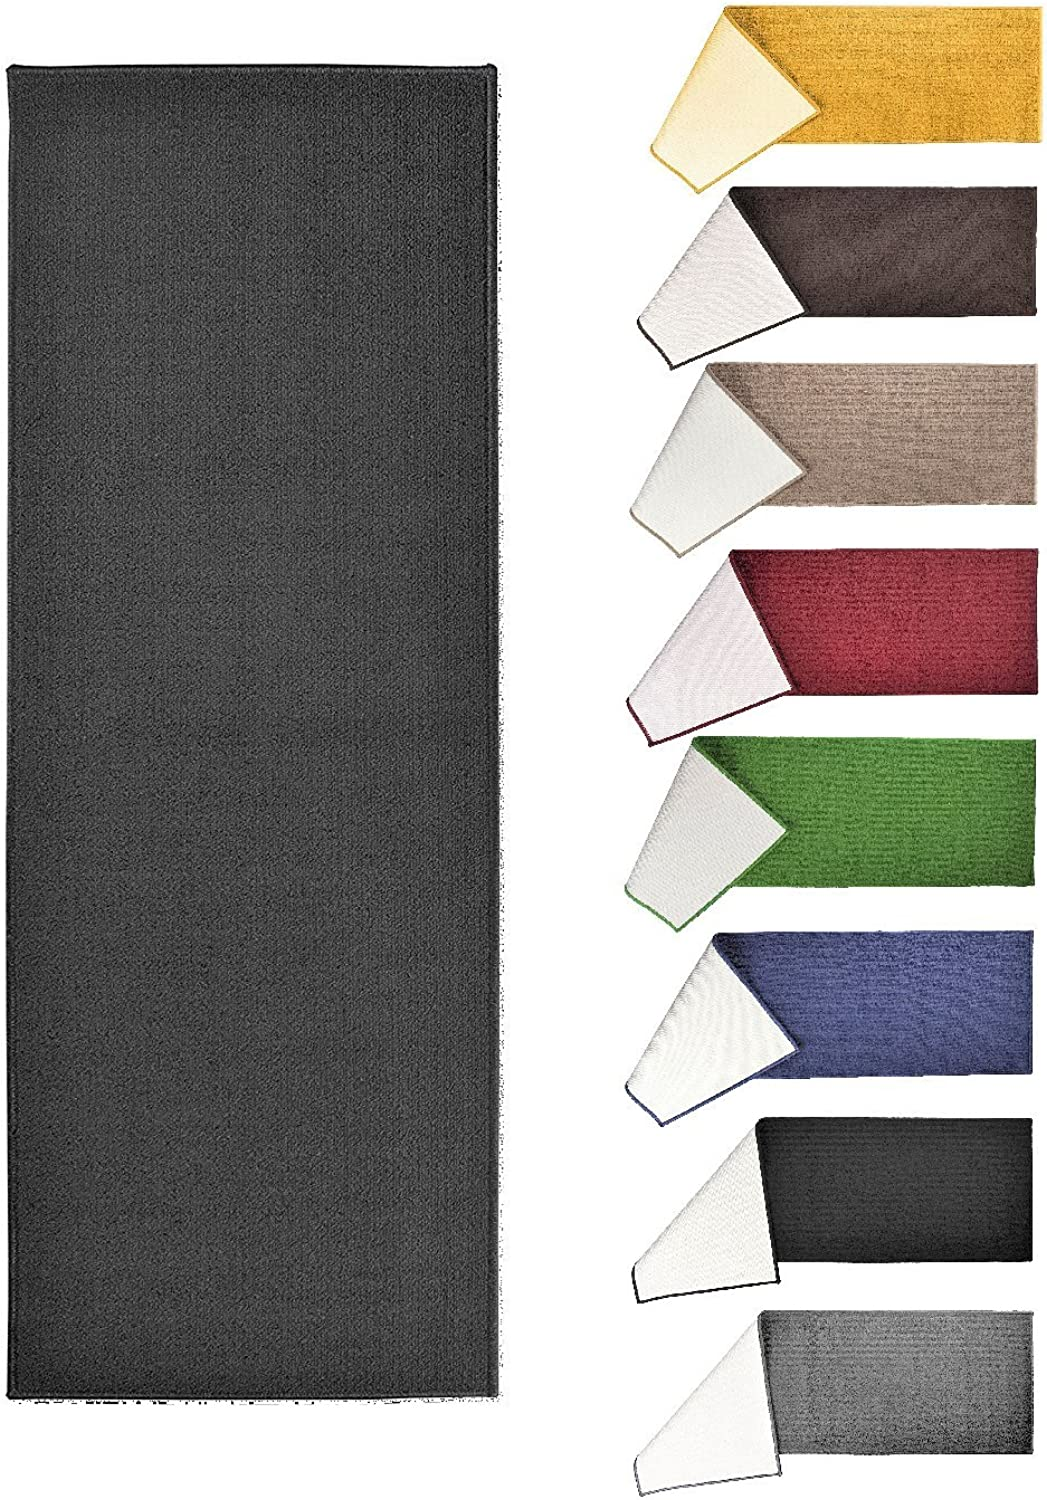 Solid Fashion Floor Runner Rug - Non-Skid Home, Hallway, Staircase, Floor Carpet - Soft and Comfortable, 22.5  x 48  (Black)